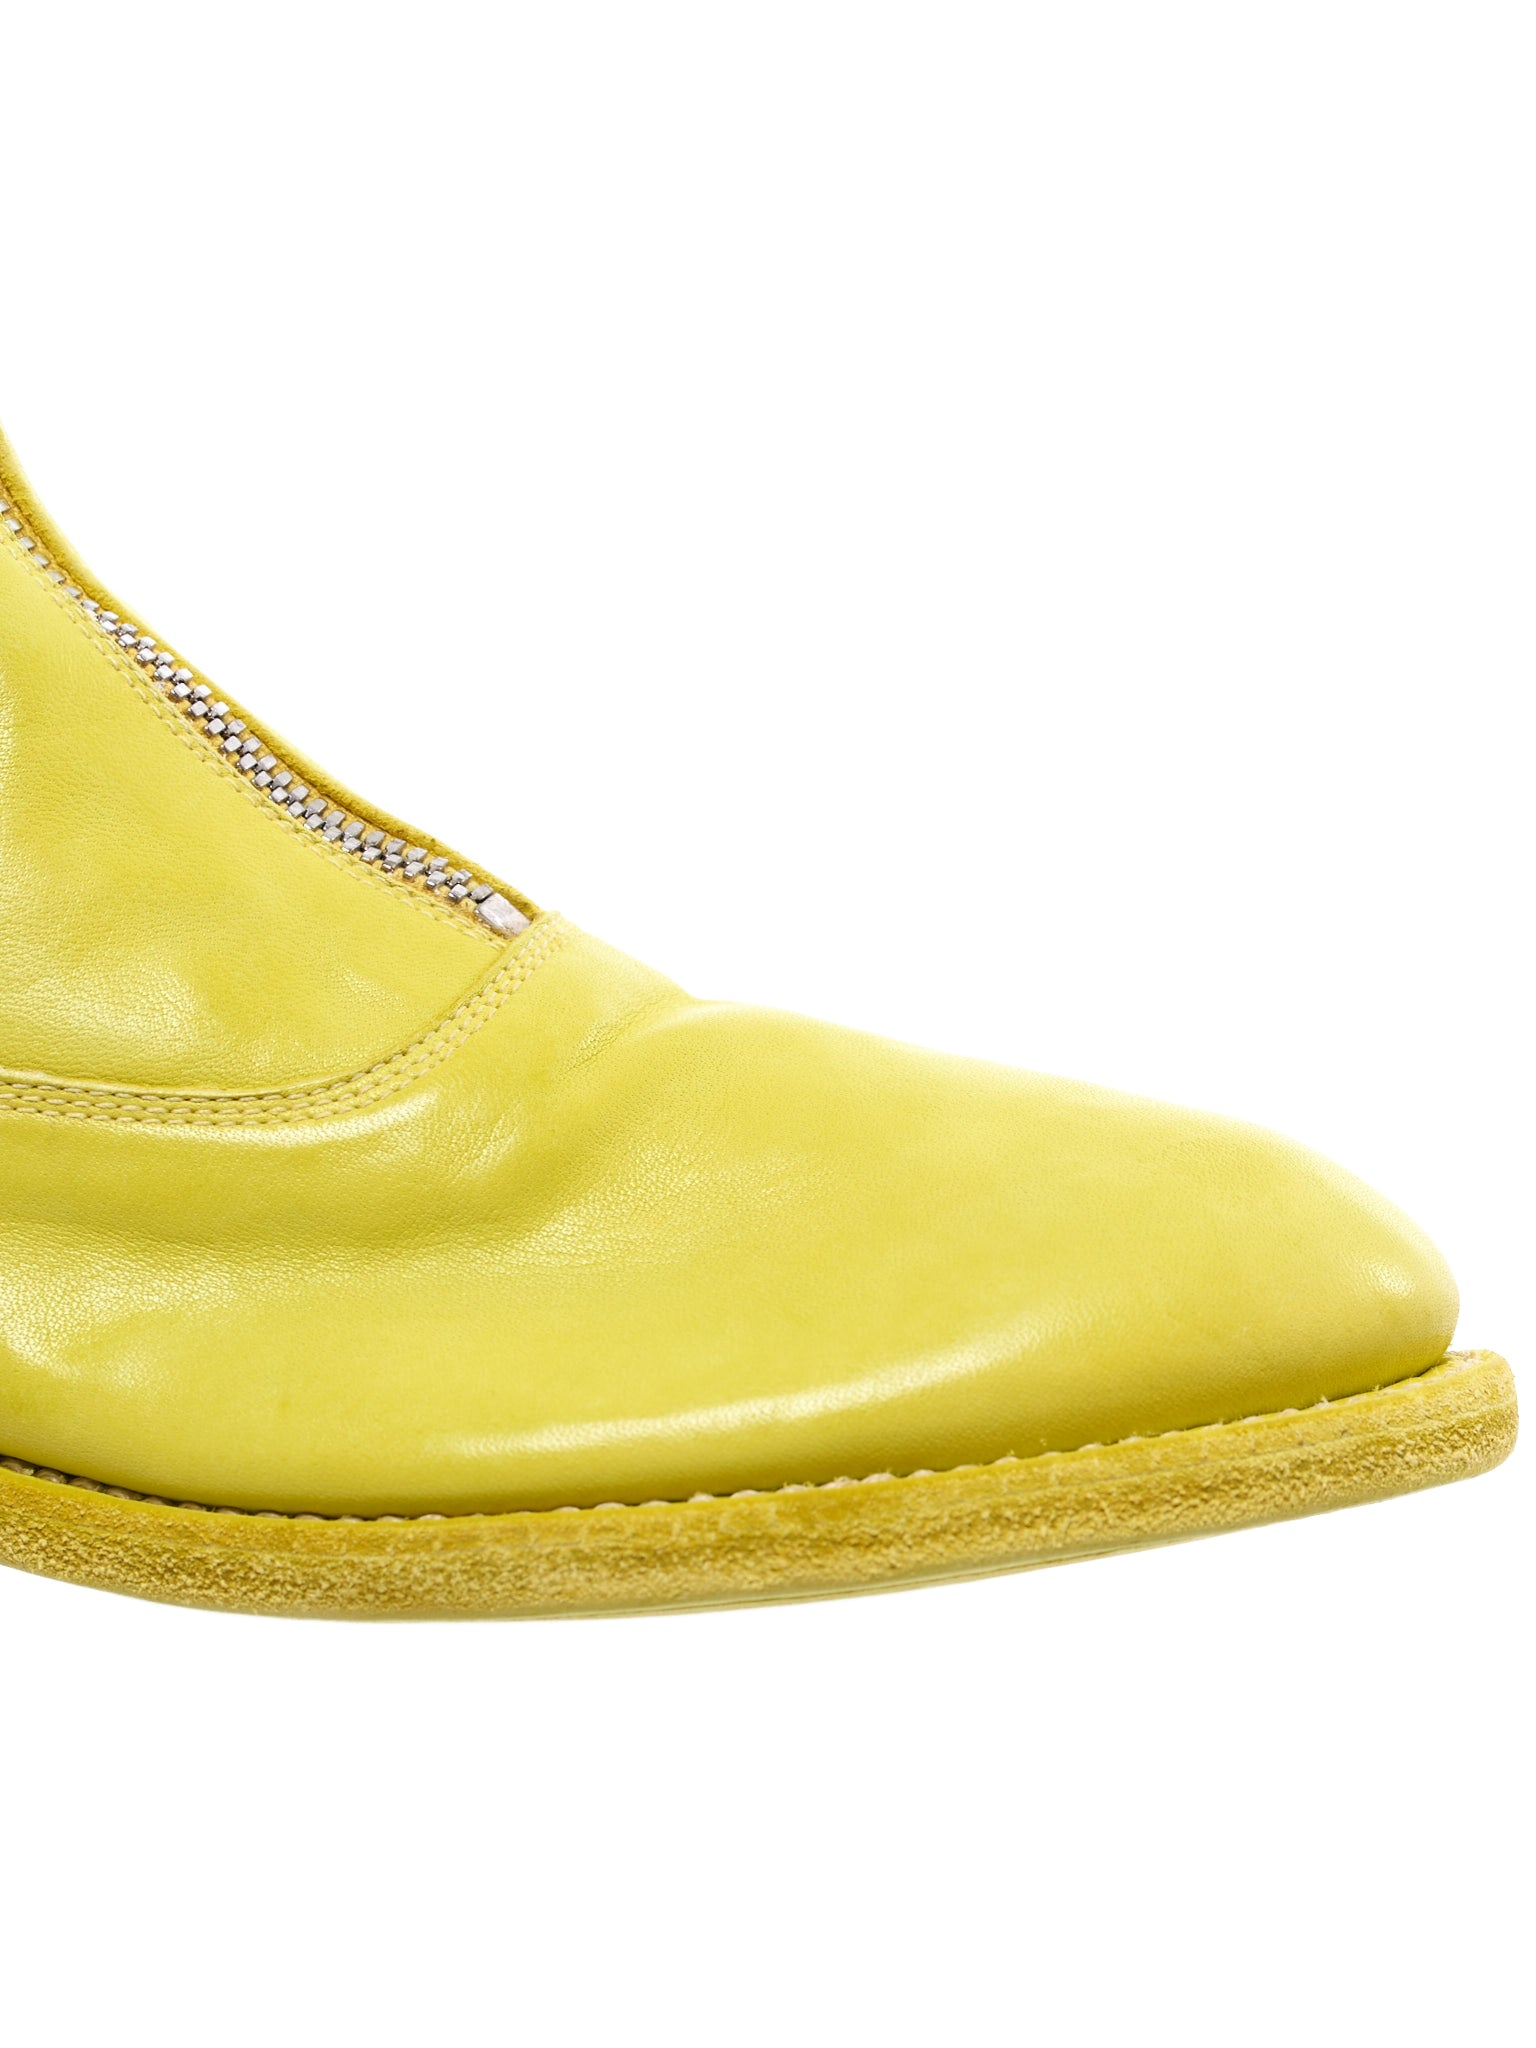 '310' Zip Leather Boot (310-SOFT-HORSE-FG-YELLOW)